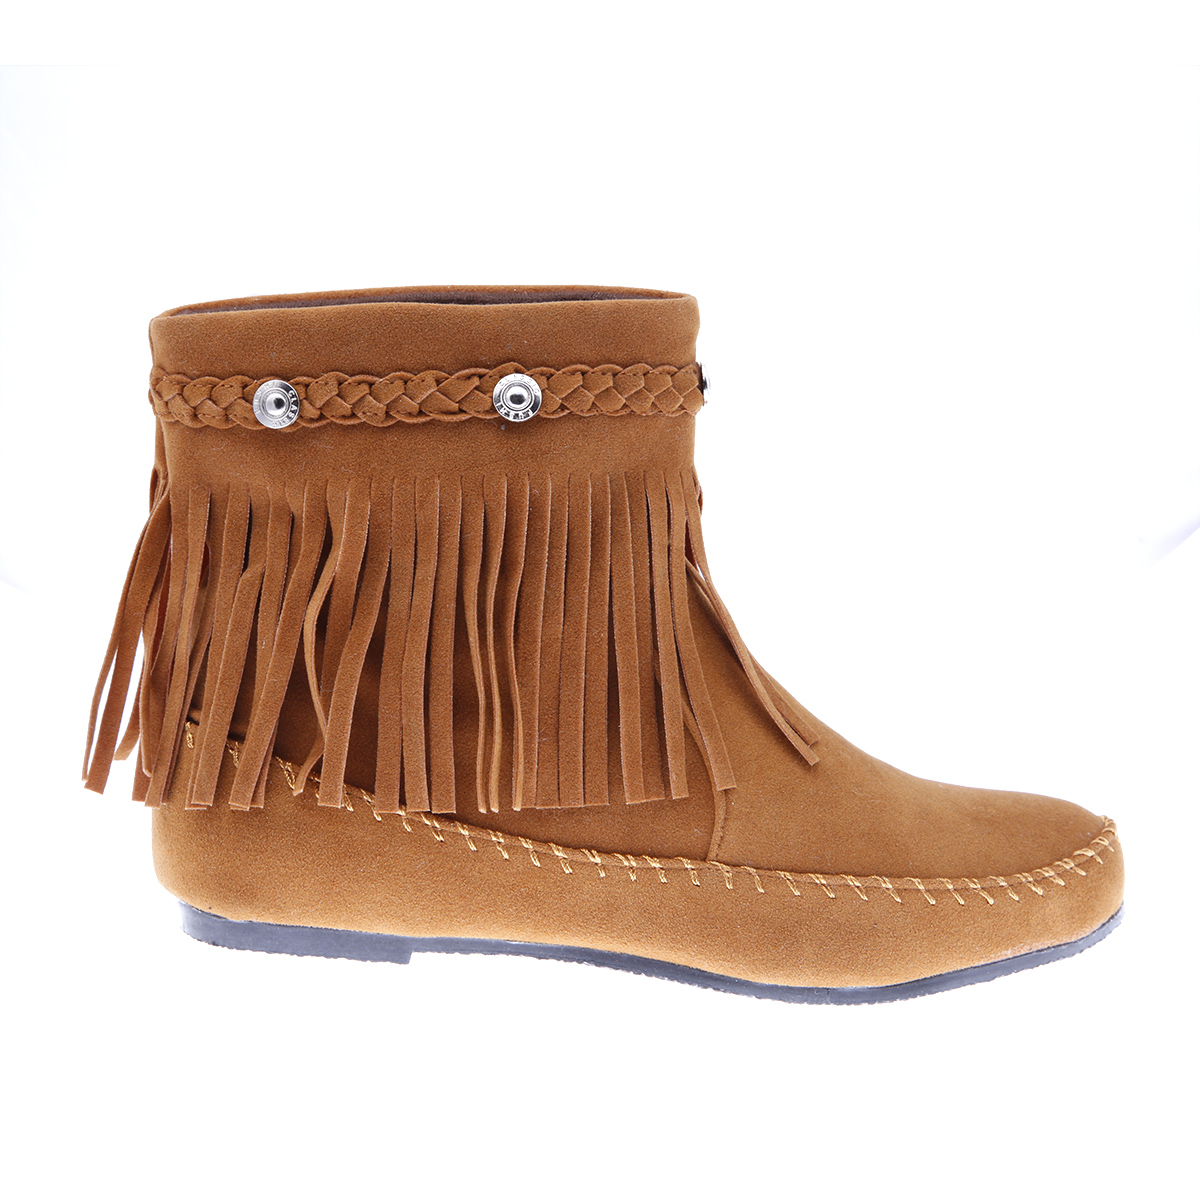 karyn ankle boots moccasin high top shoes fringe